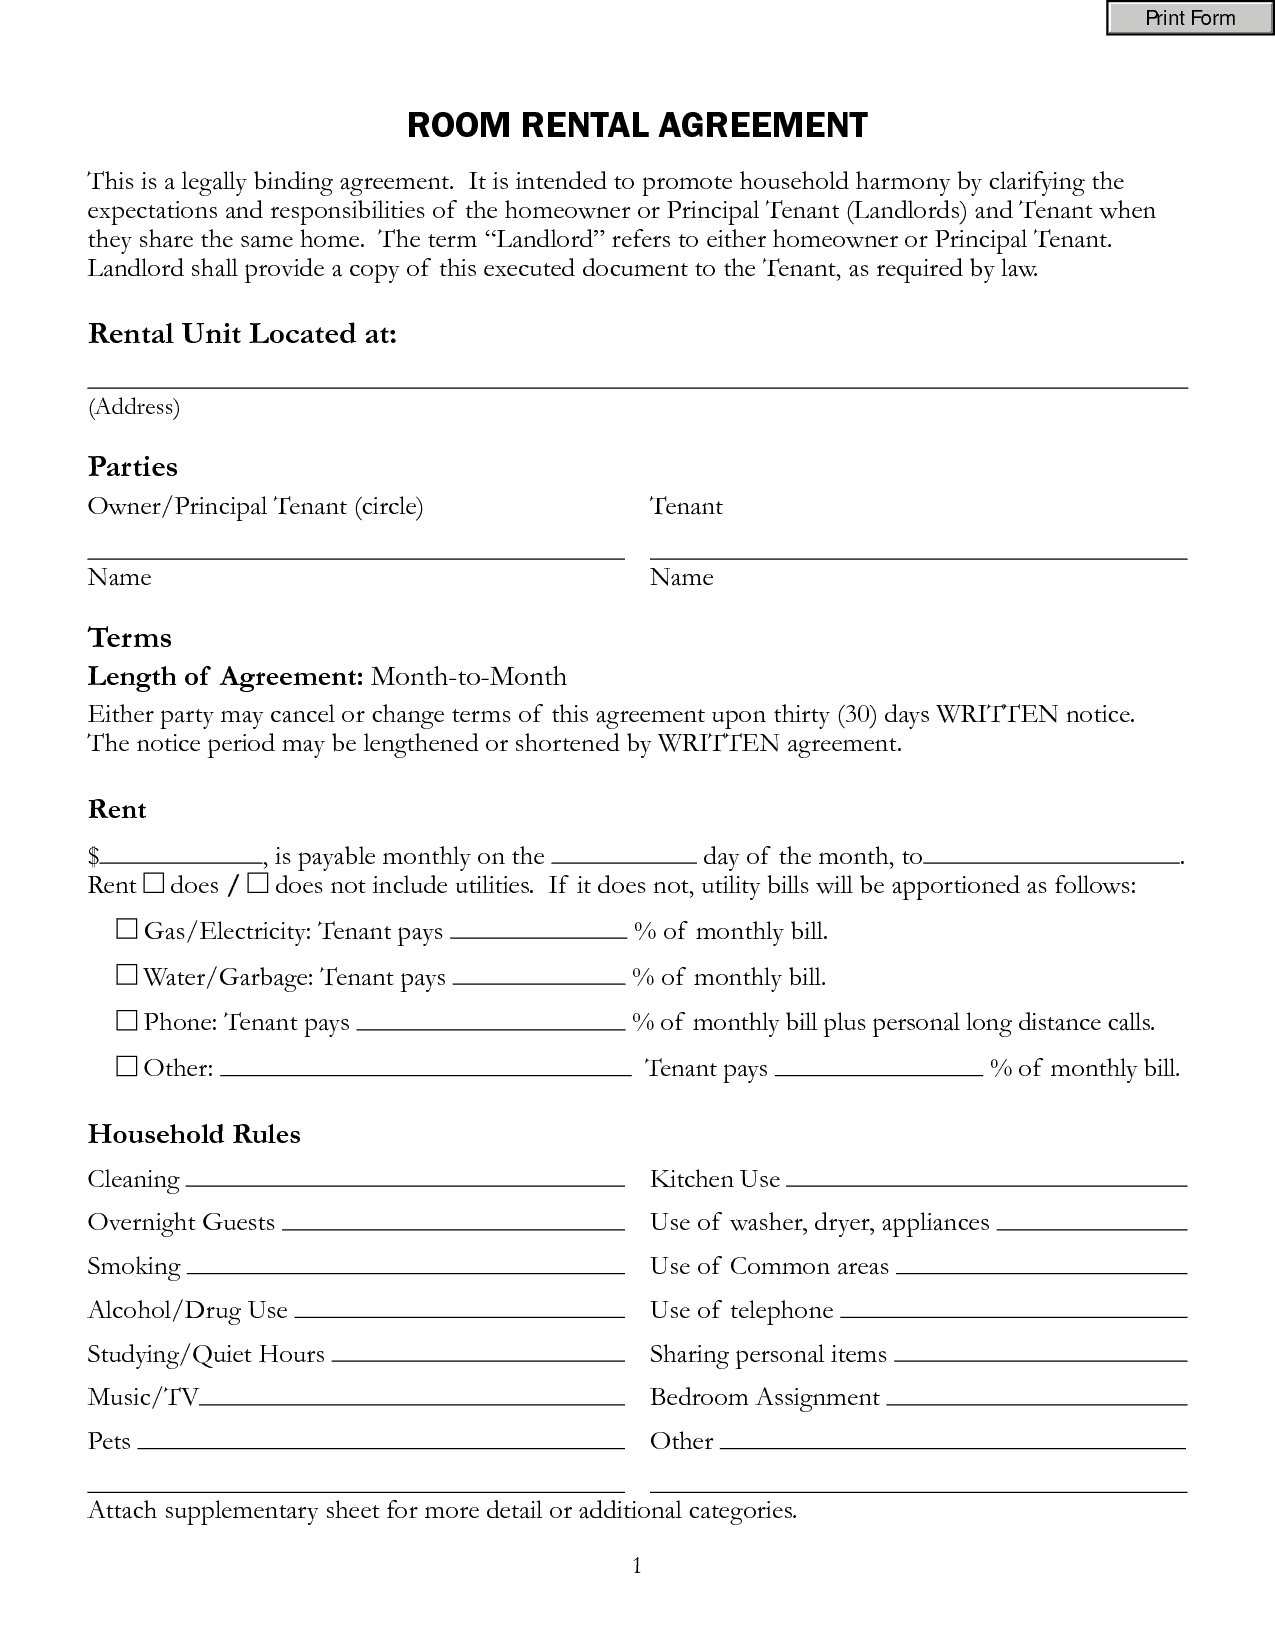 renting contract template - top 5 resources to get free rental agreement templates